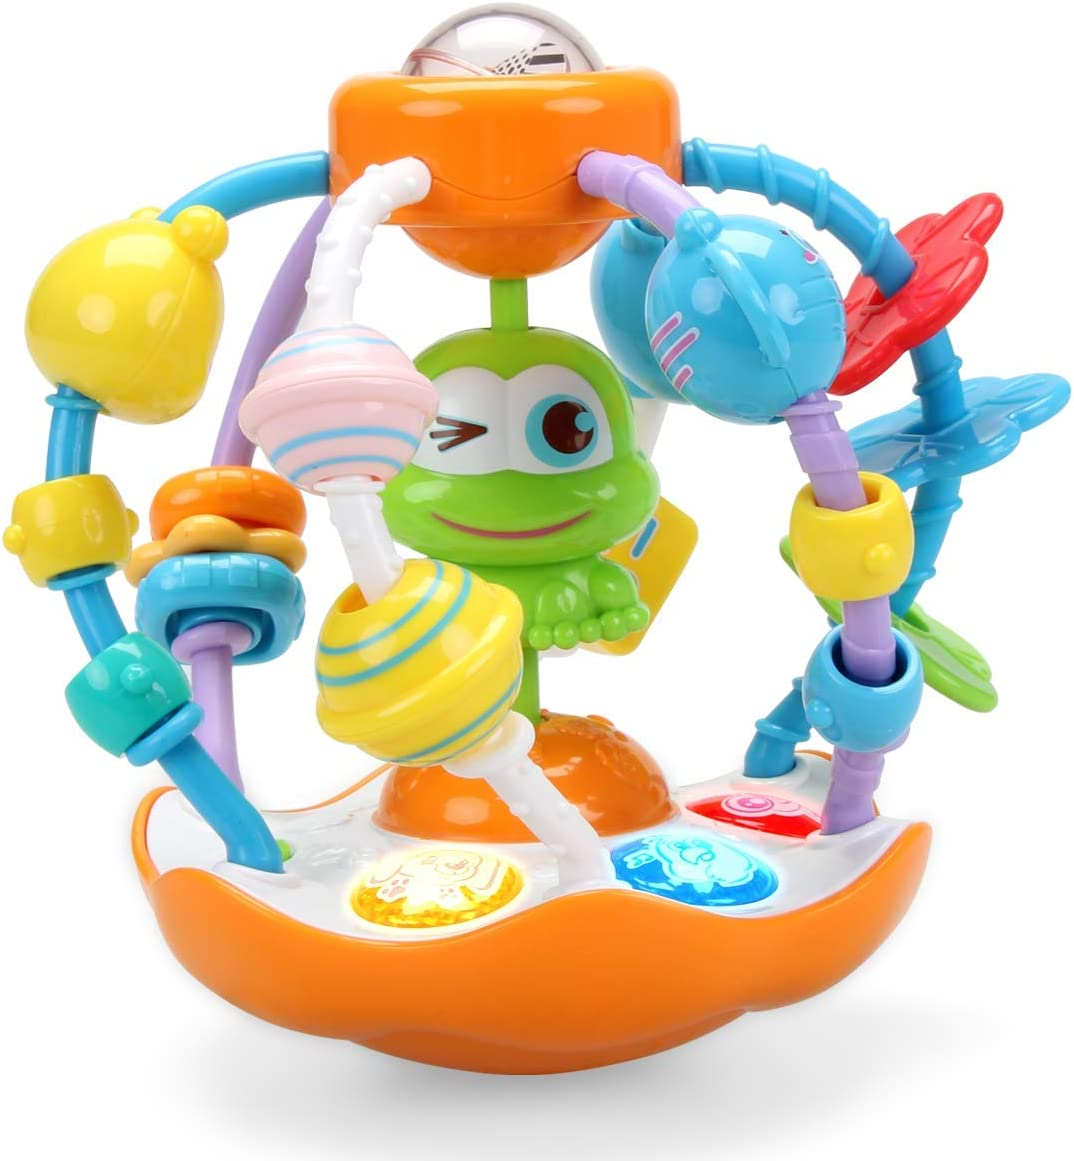 INTMEDIC Oball Grasping Multiple Sensory Activity Rattle Ball Toy for Baby with Light & Music to Practice Fine Motor Skill Finger Flexibility as Gifts for 6 Months & Up Baby Infant Newborn